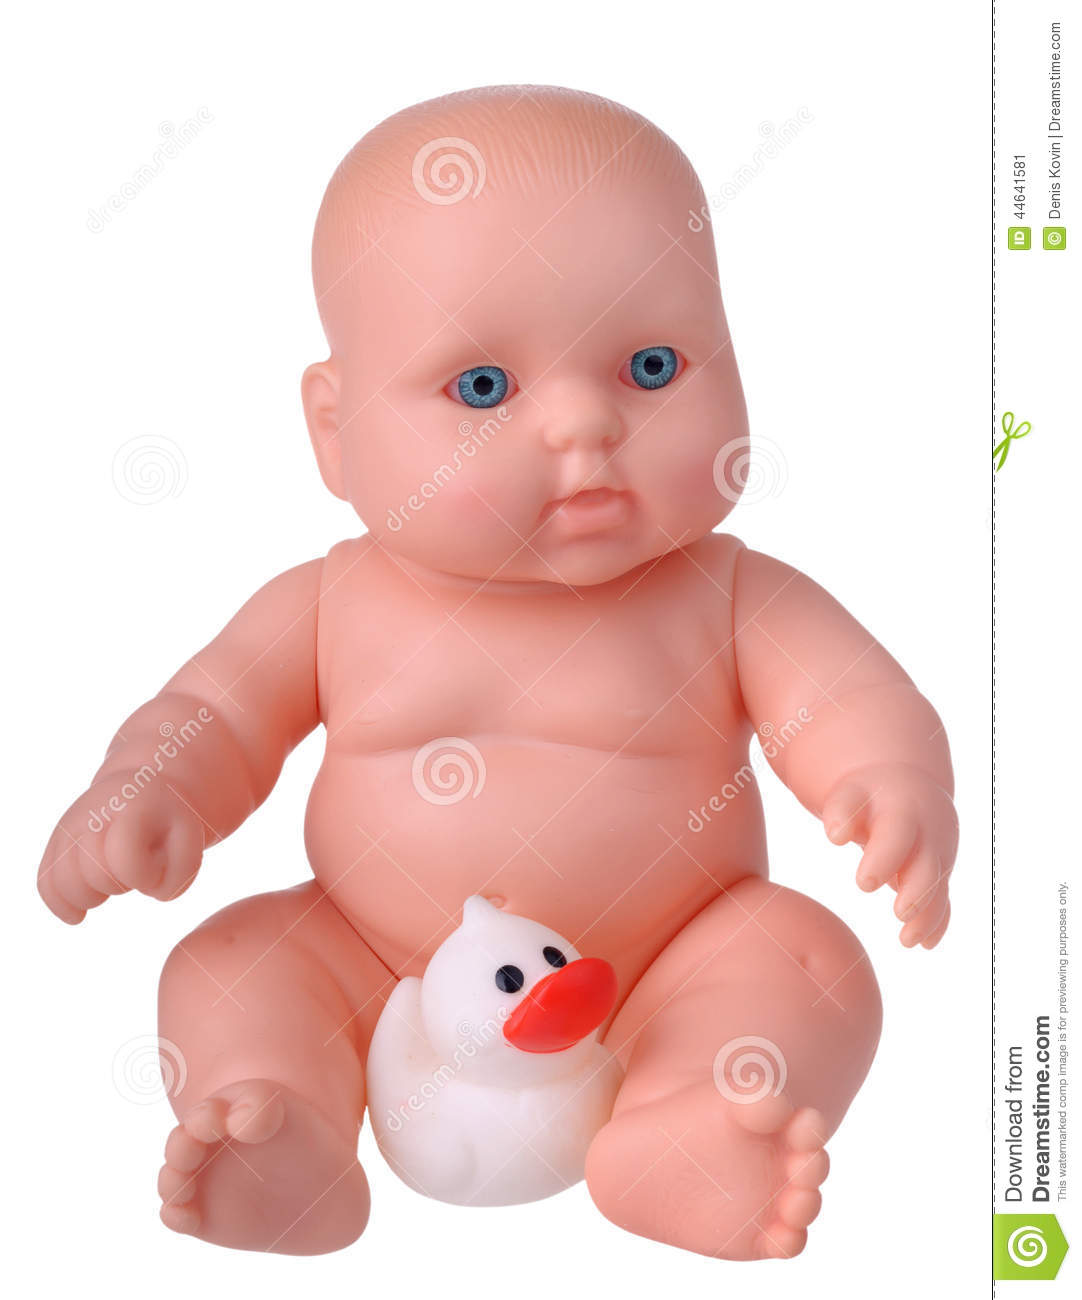 Plastic Baby Doll With Rubber Duck Stock Image Image